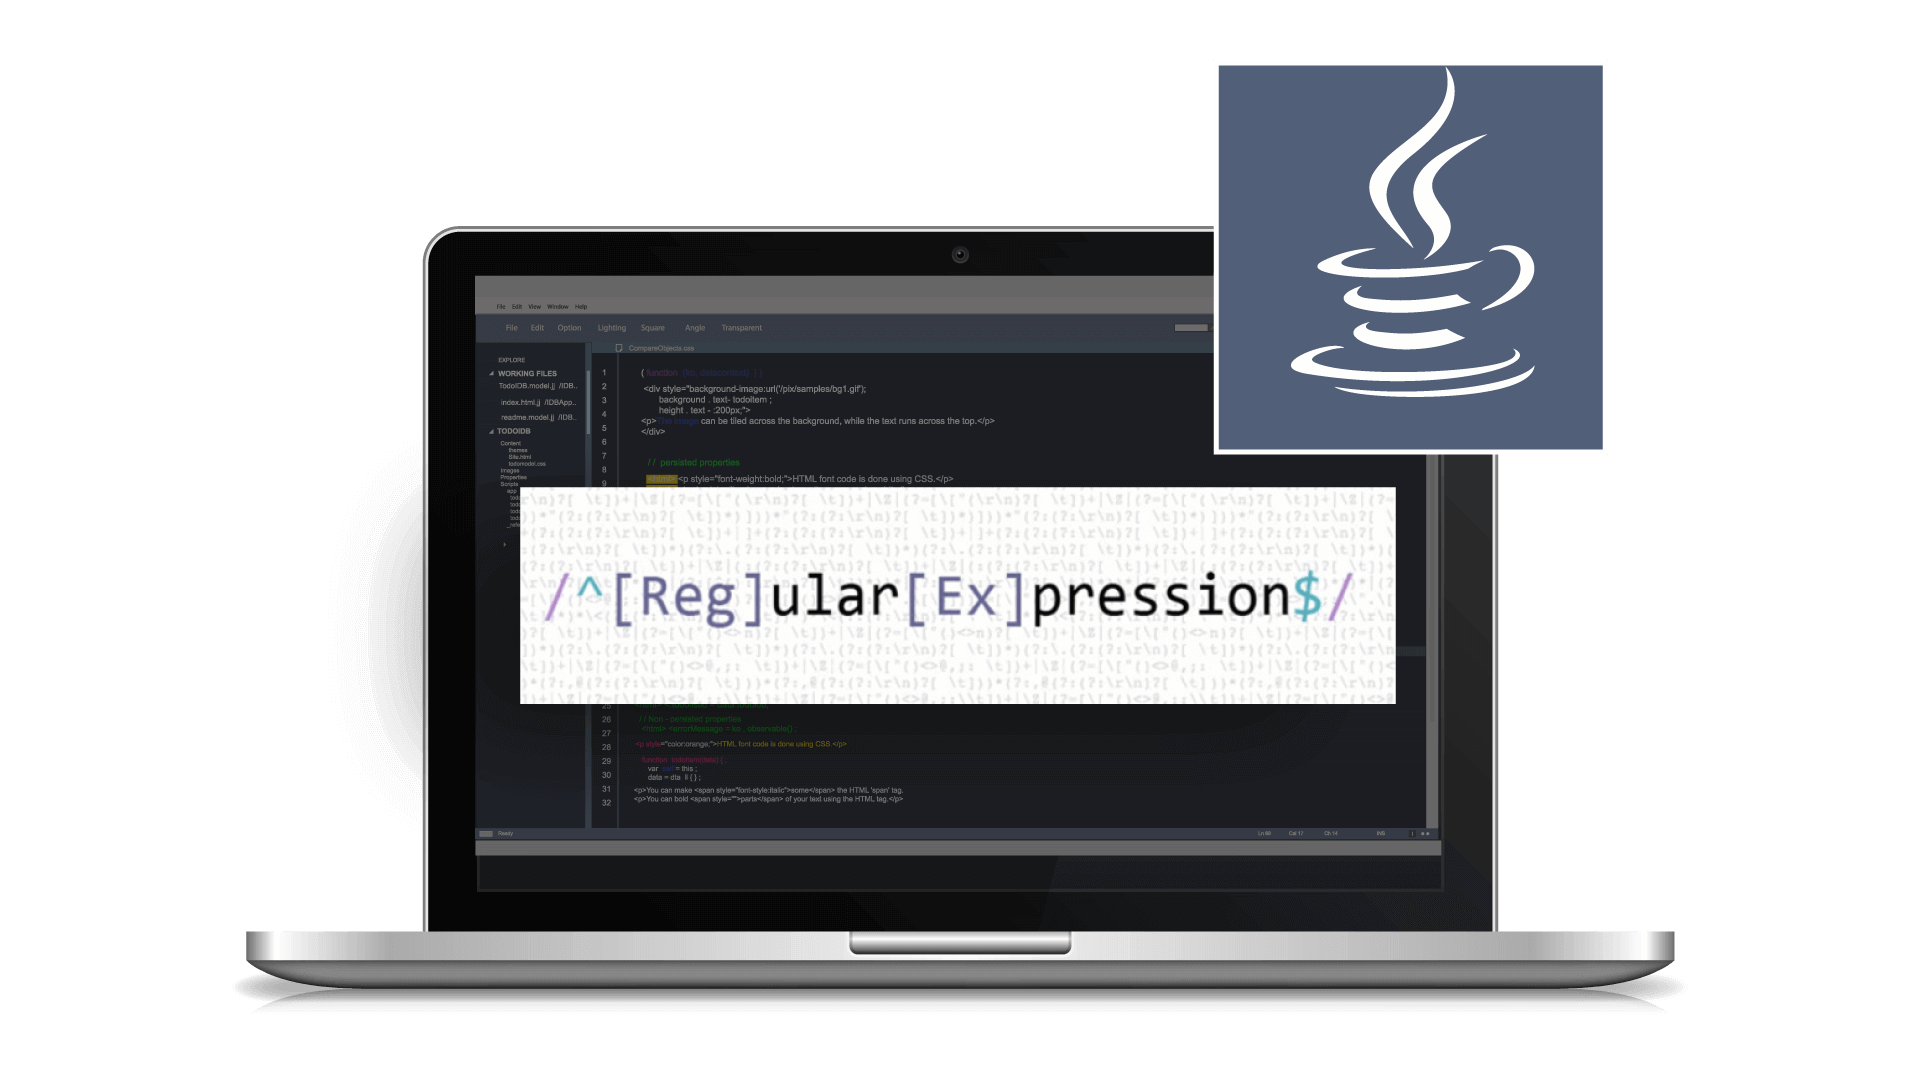 Regular Expressions - Java Regex - Edureka